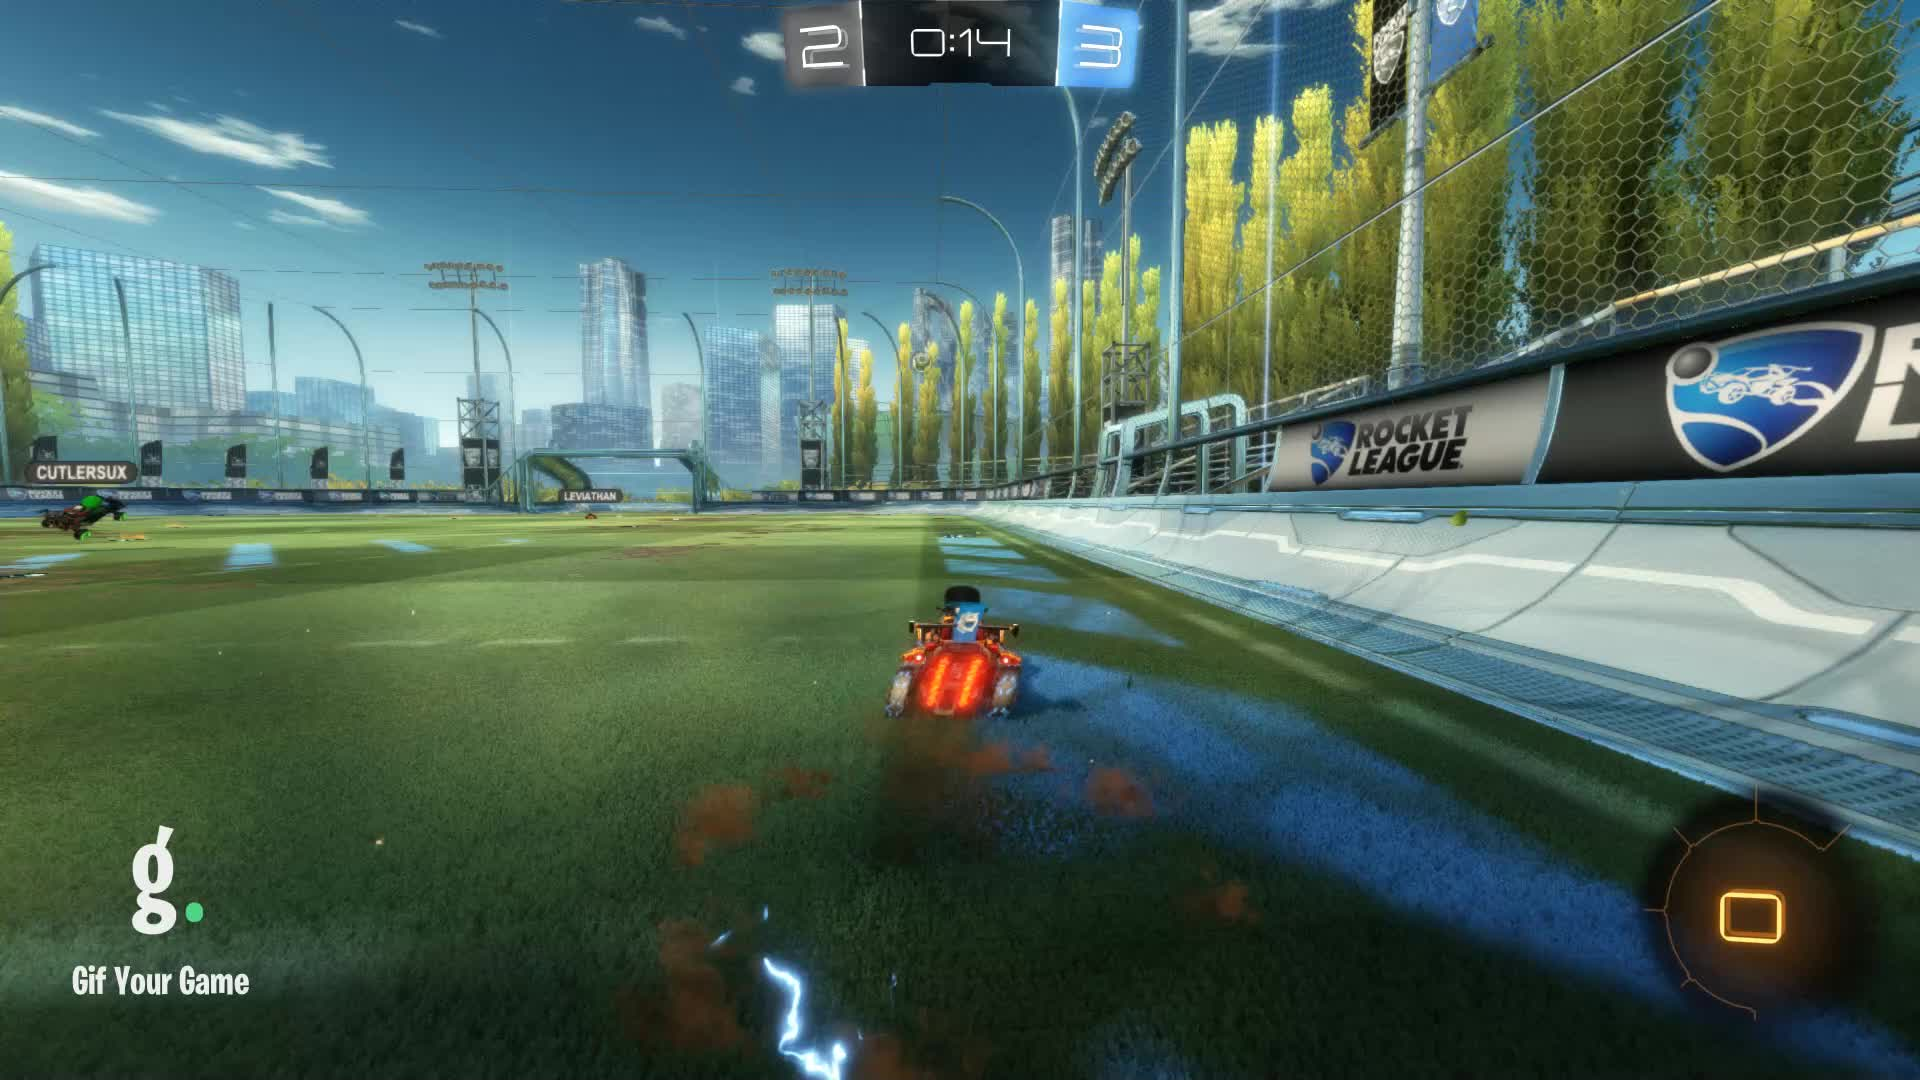 Assist, Duck Dodgers, Gif Your Game, GifYourGame, Rocket League, RocketLeague, Assist 2: Duck Dodgers GIFs